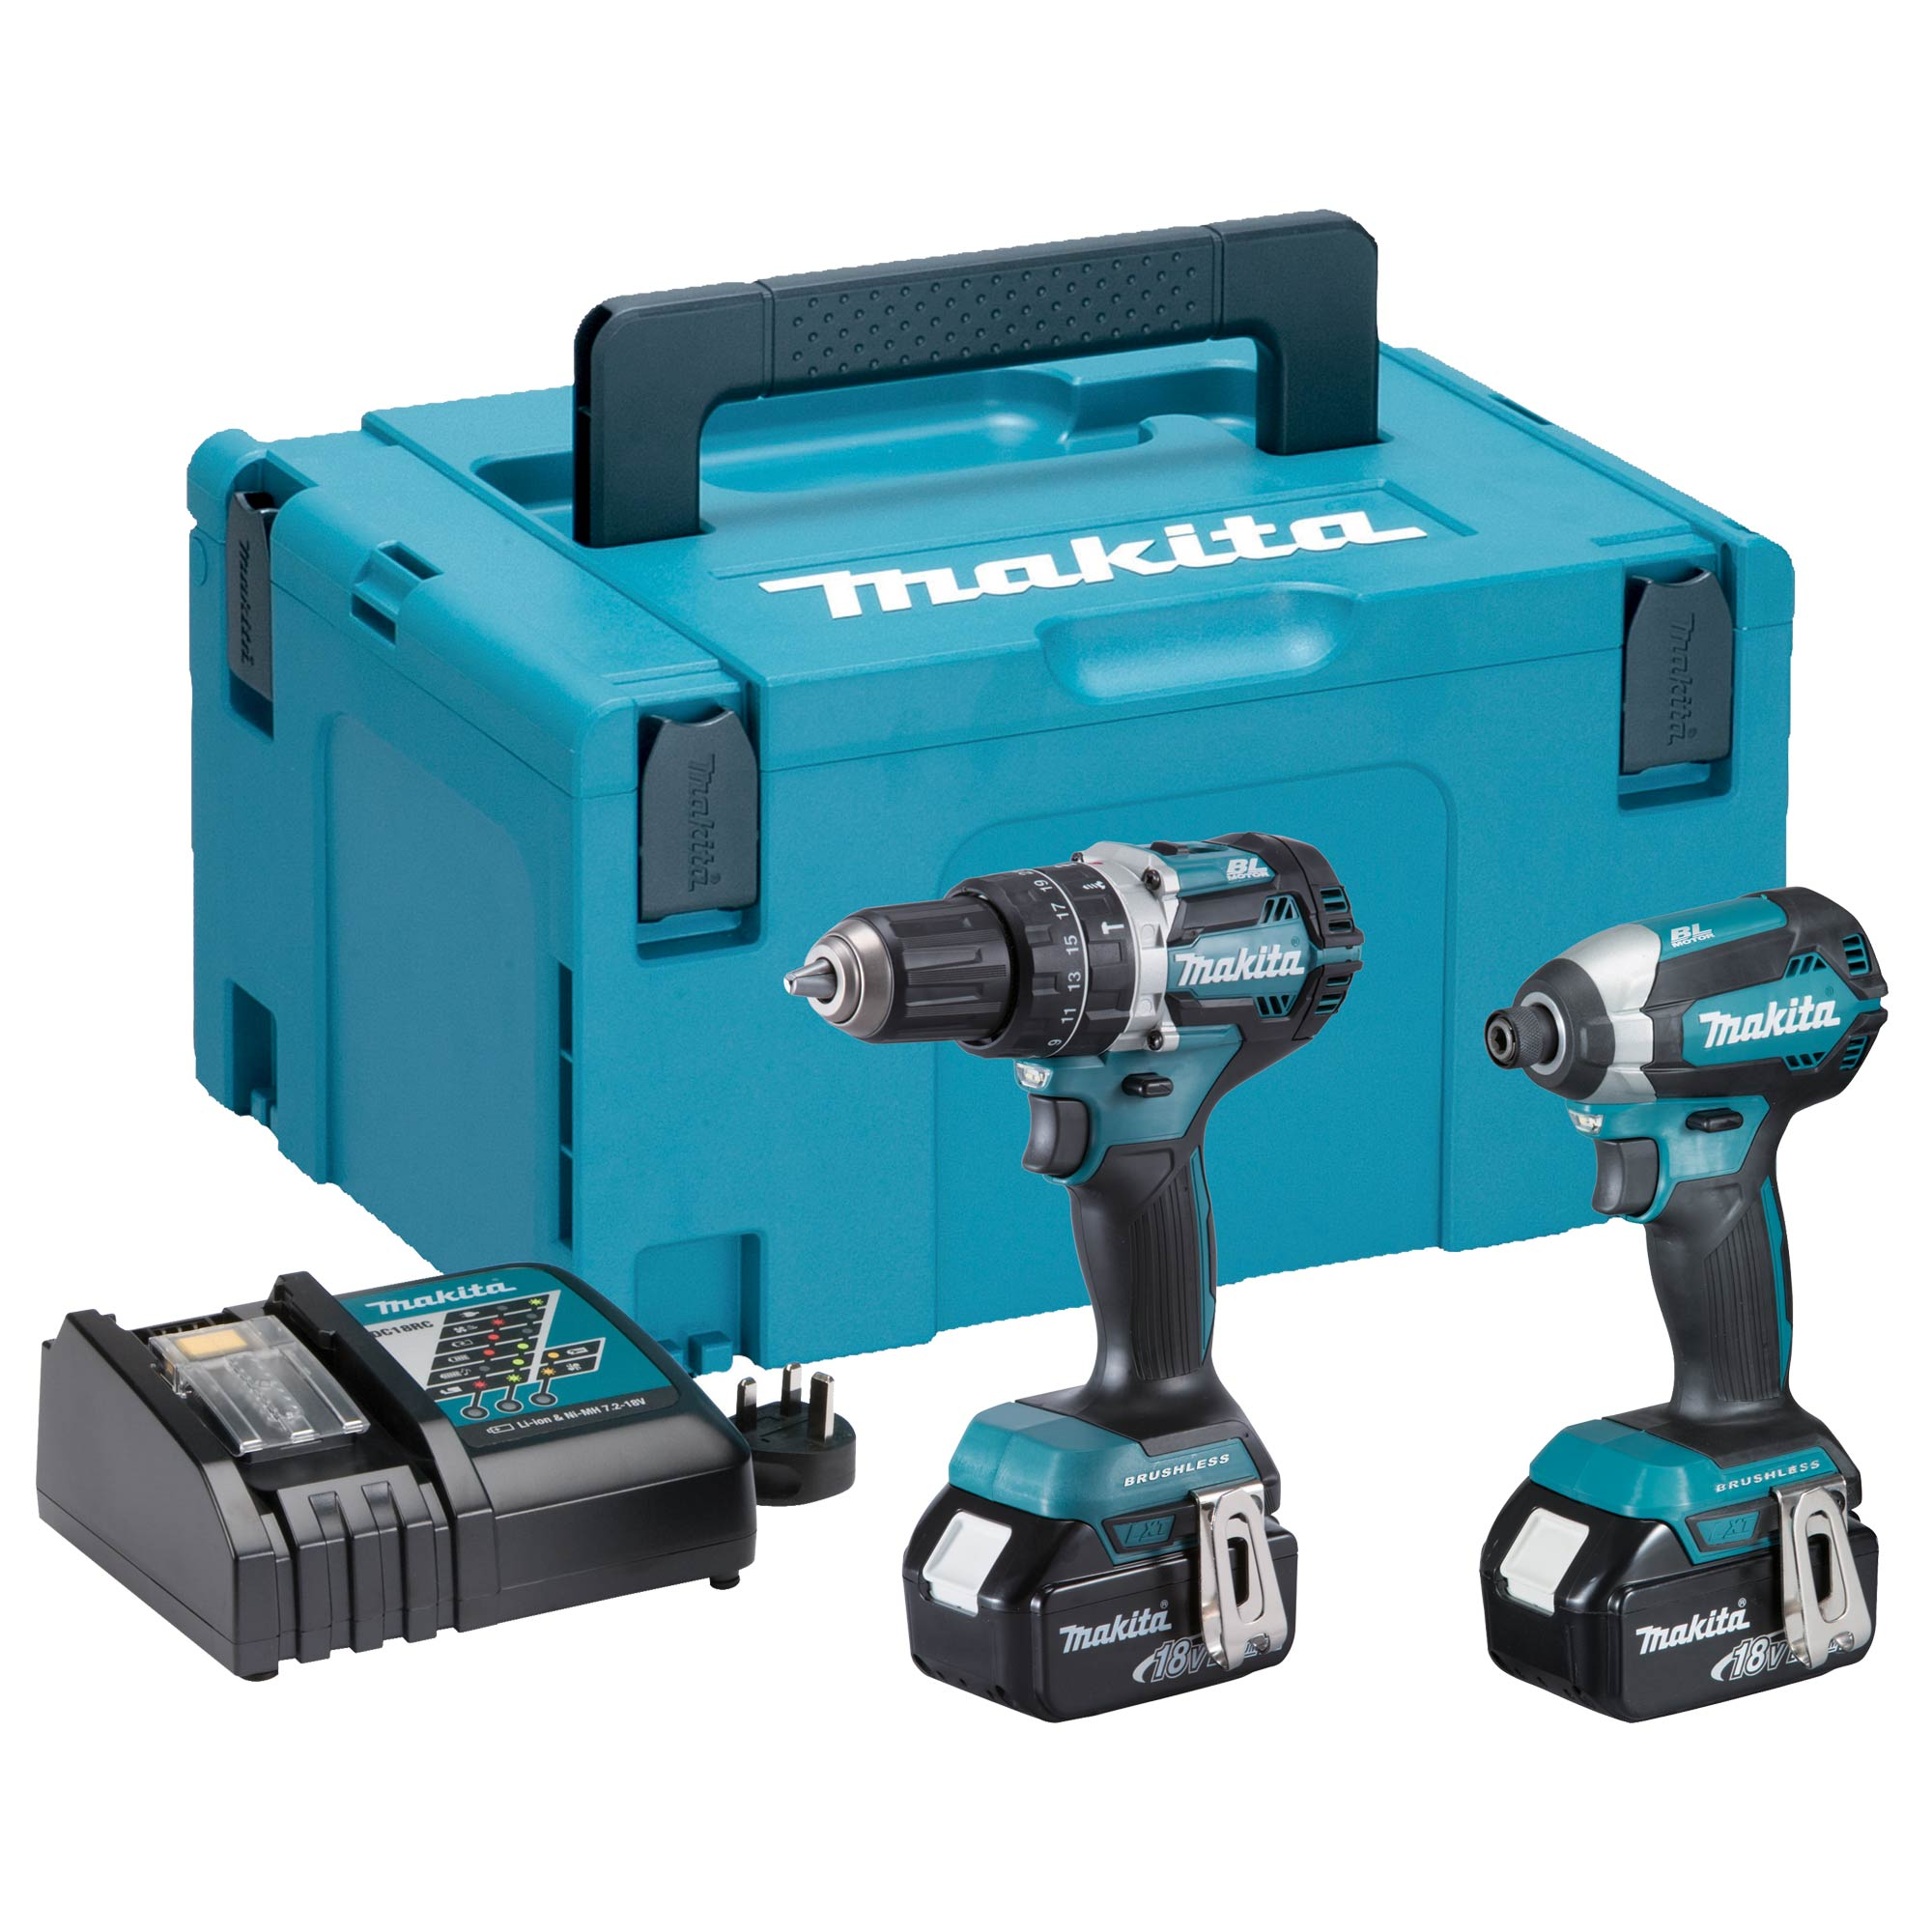 makita dlx2180rj makita 18v li ion 3 0ah brushless 2. Black Bedroom Furniture Sets. Home Design Ideas